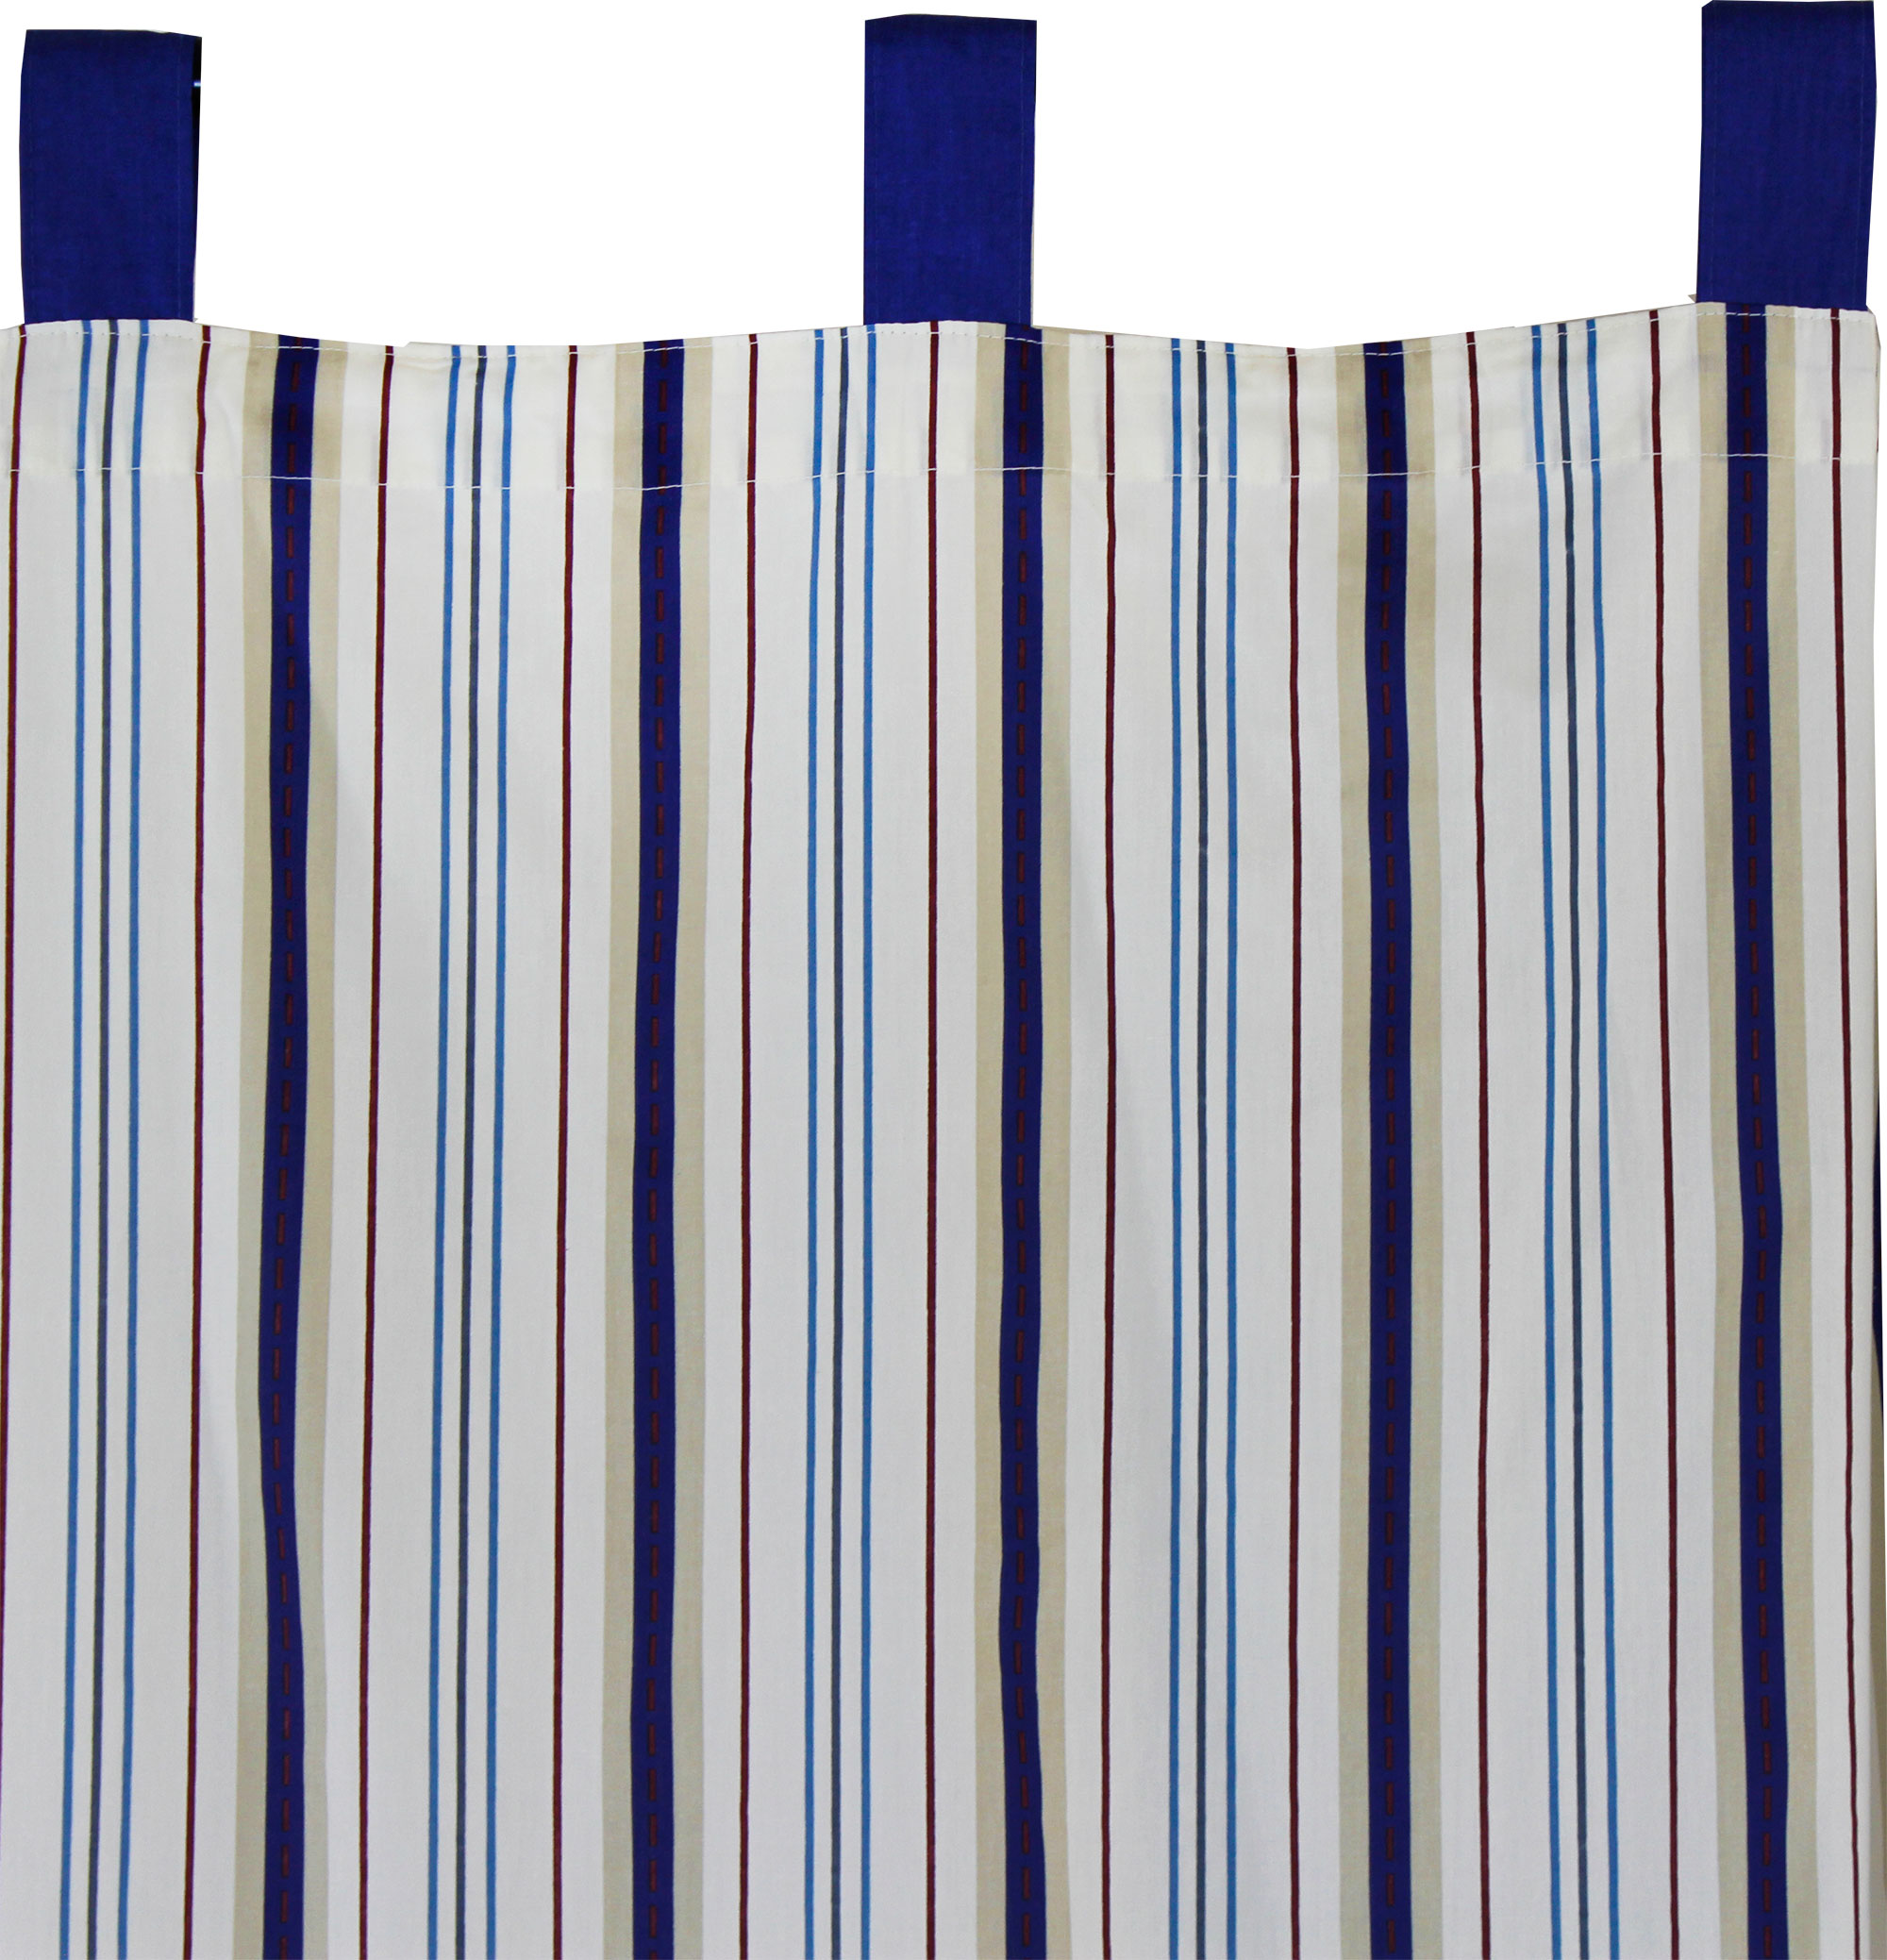 2pc Disney Stripes Long Drapes Geometric Curtain Panels